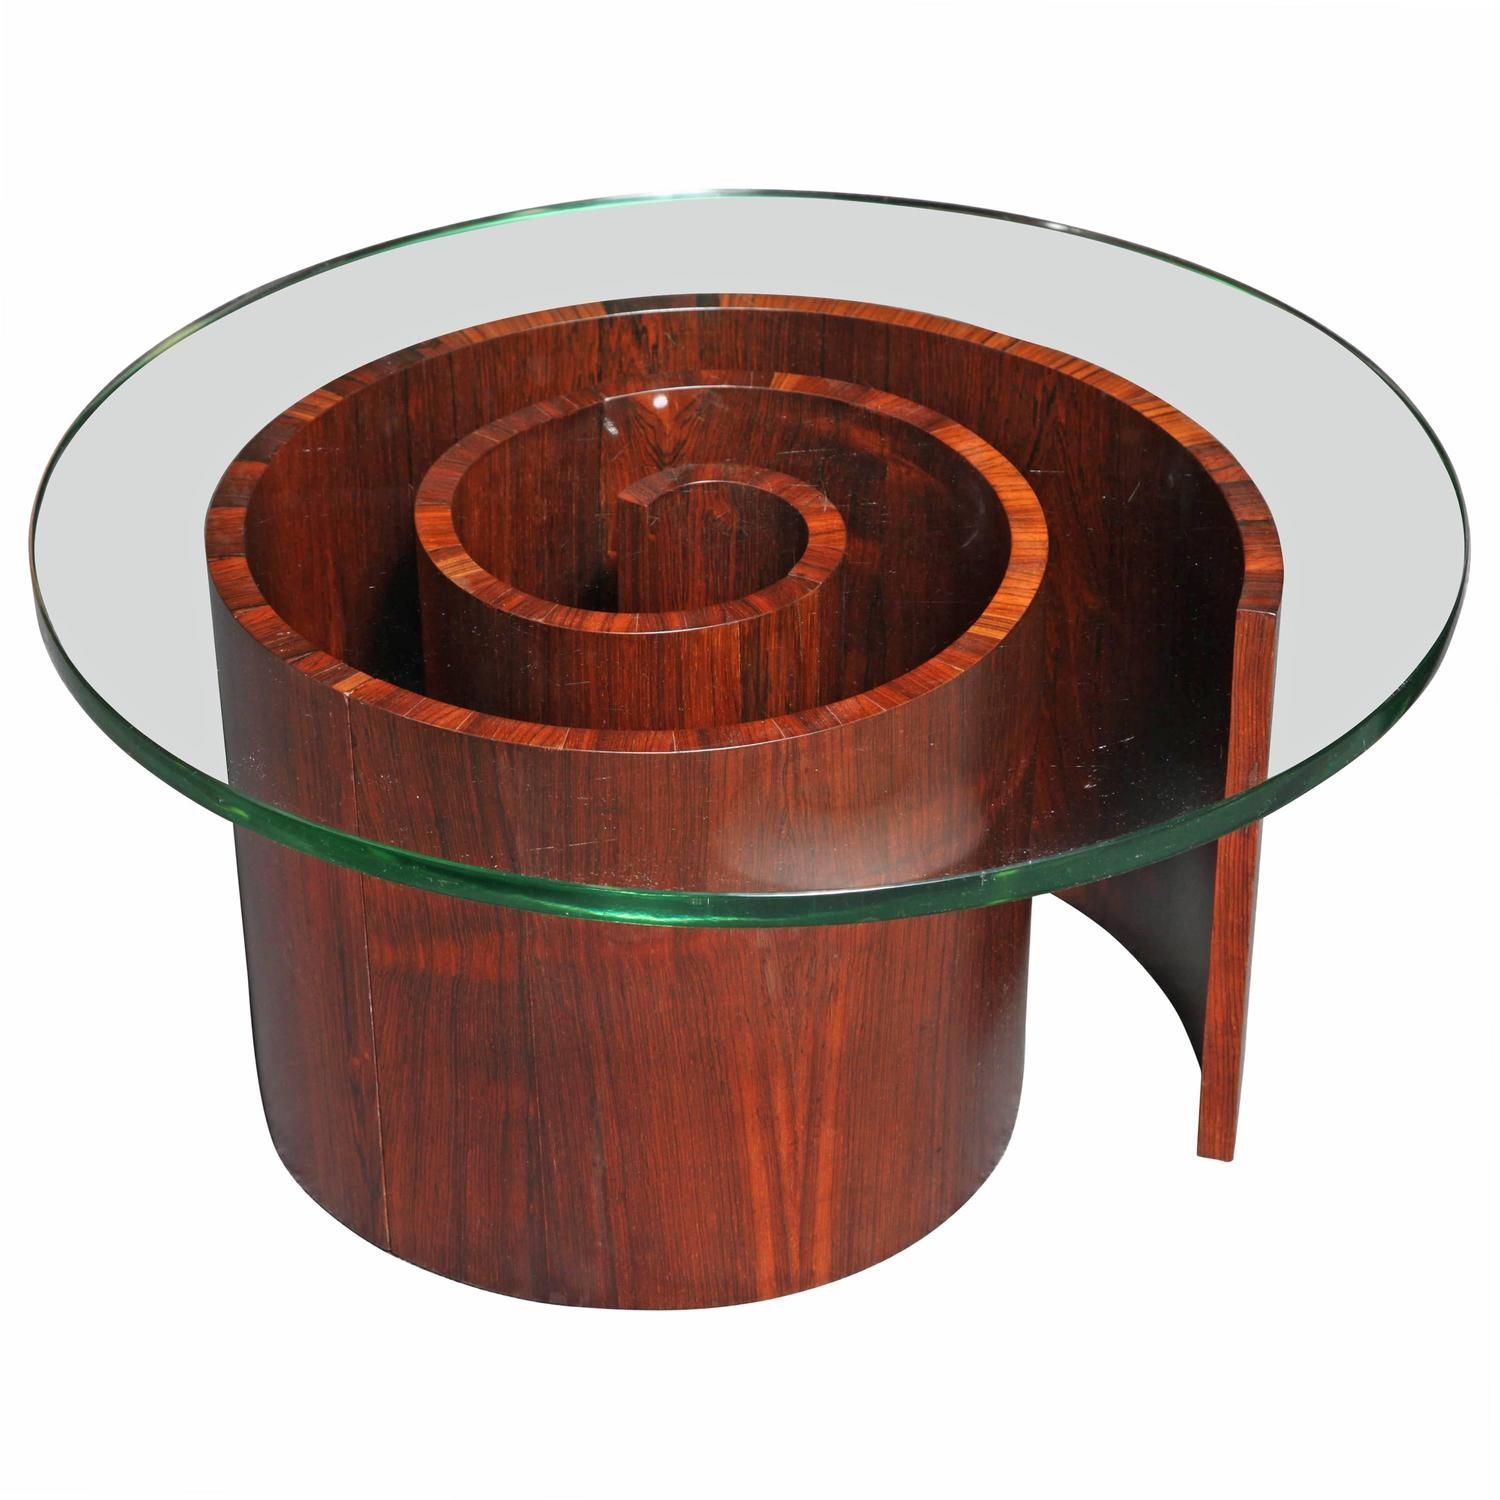 Rosewood Cocktail Table Made In Italy Zt503 Fred Silberman Table Cocktail Tables Coffee And Cocktail Tables [ 1500 x 1500 Pixel ]